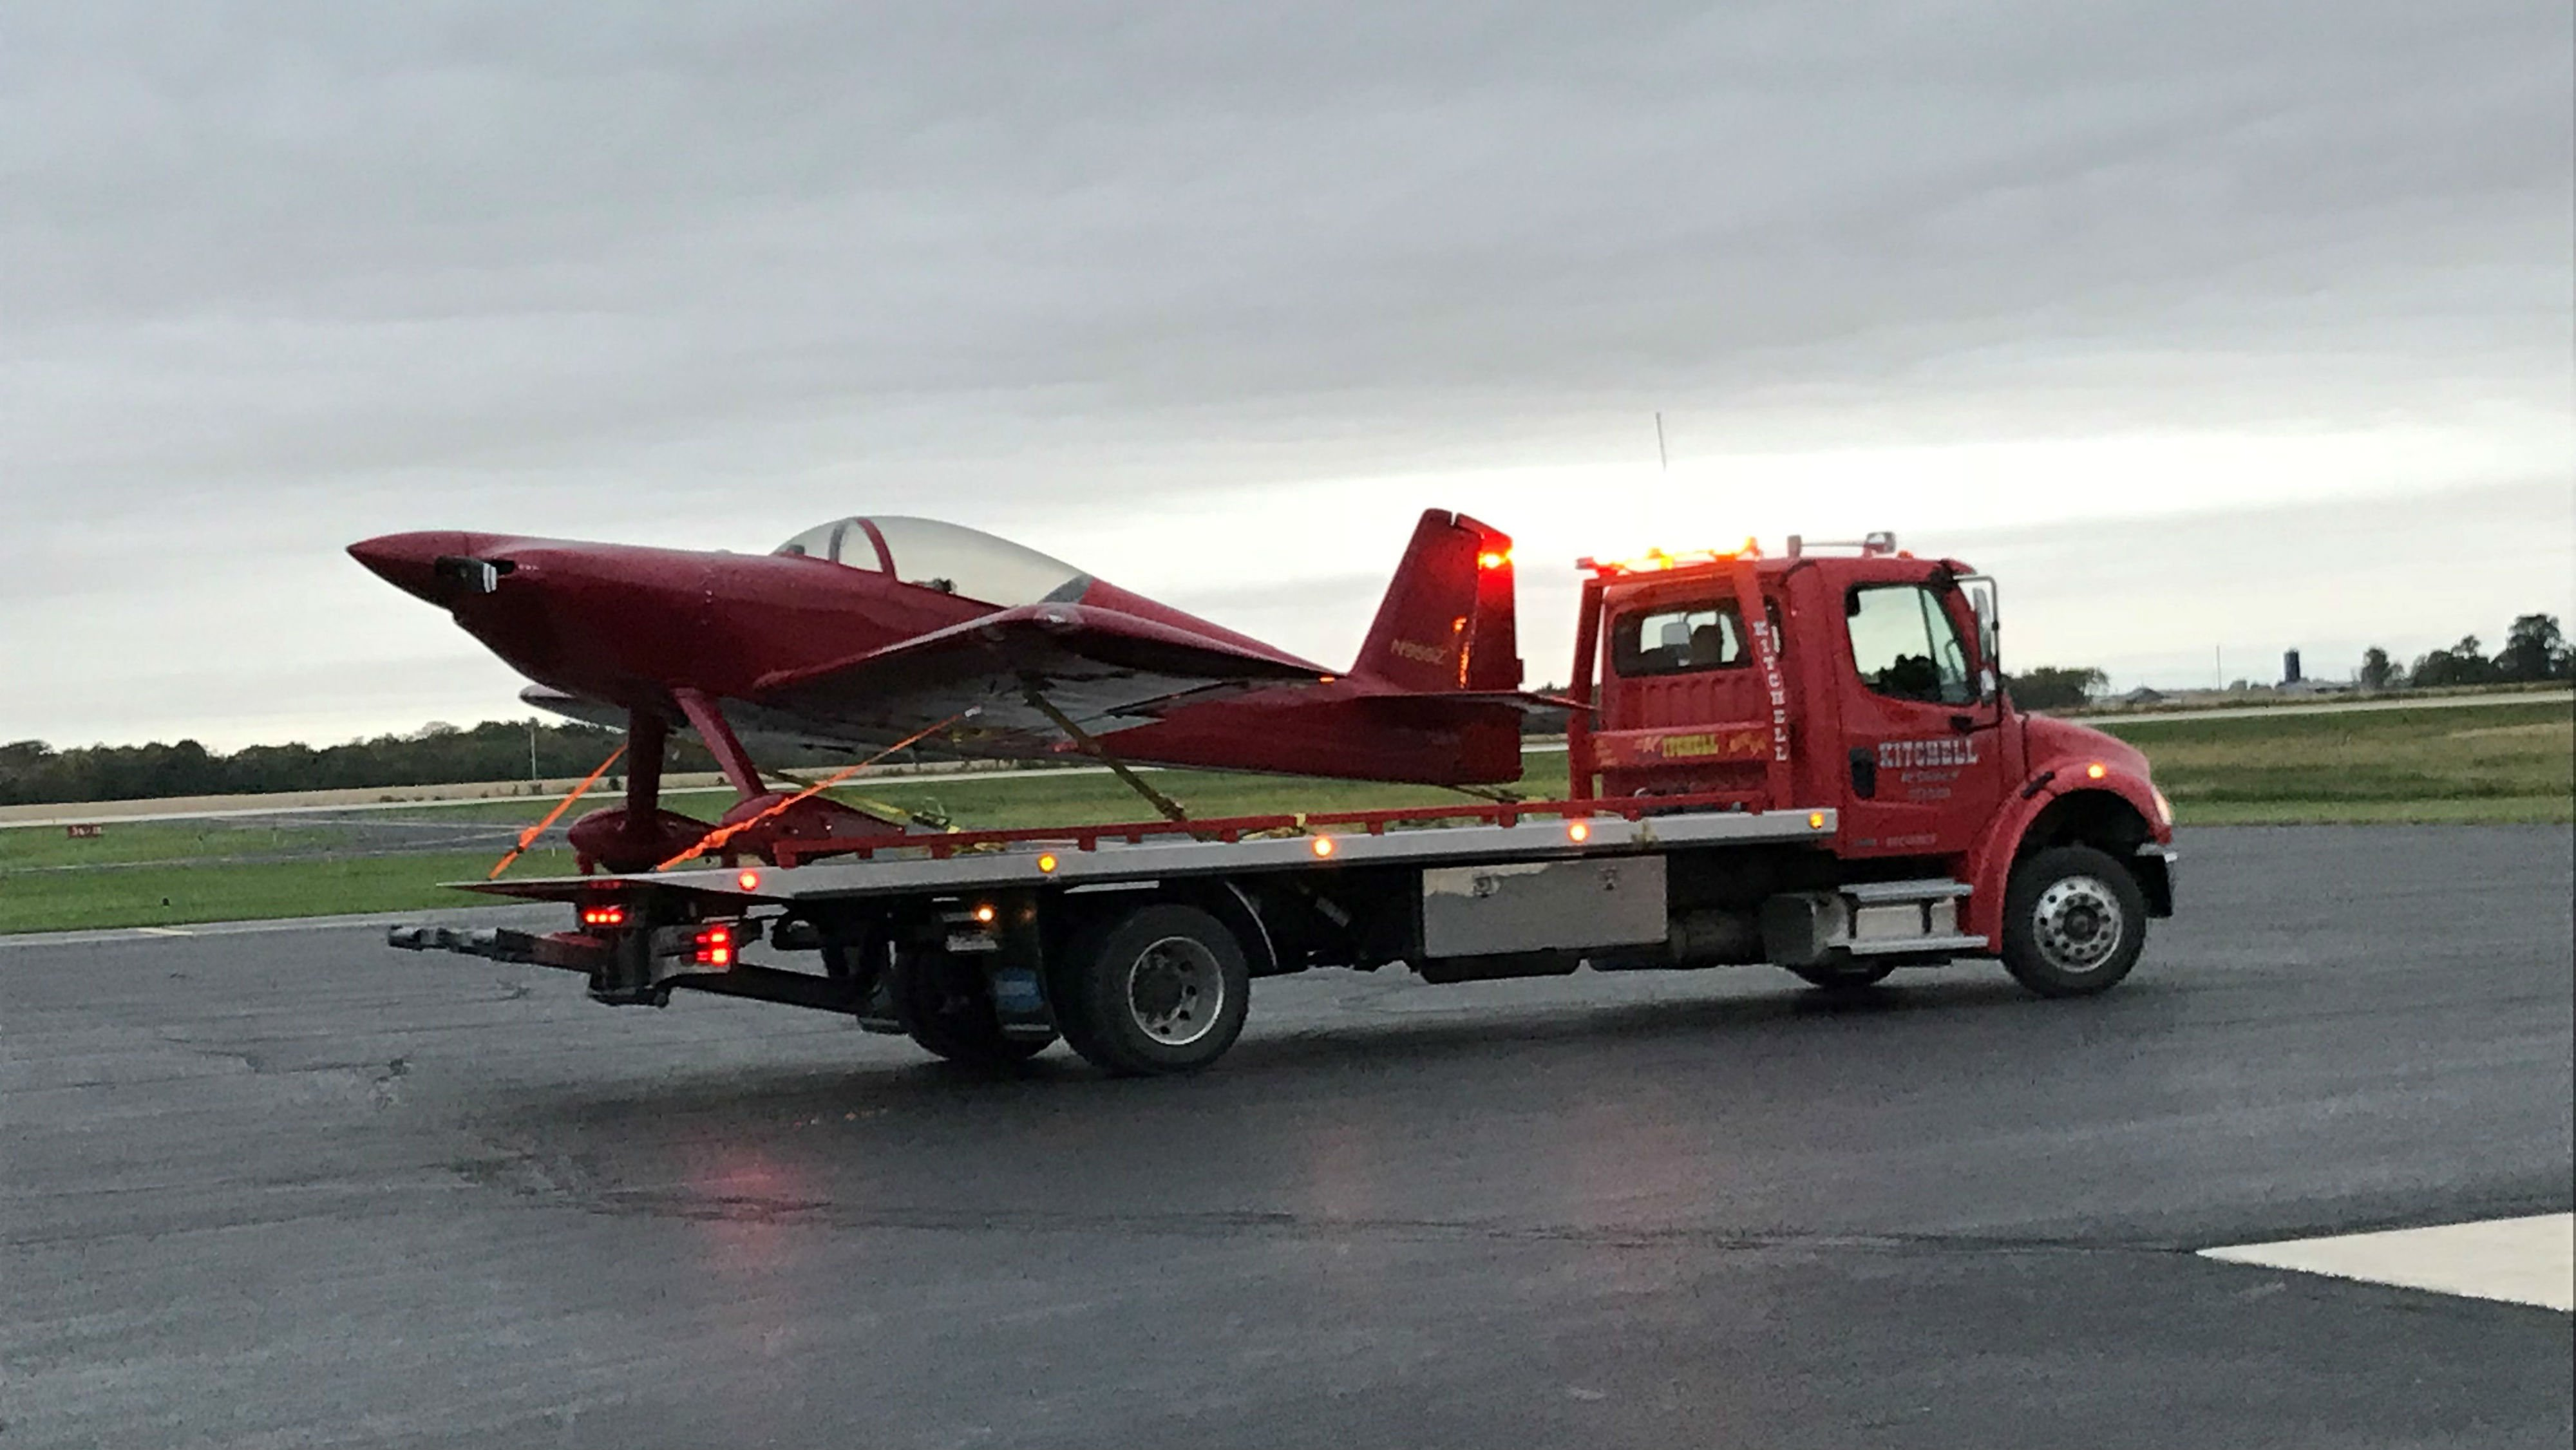 Officials put the plane on the back of the tow truck to take it back to the airport.